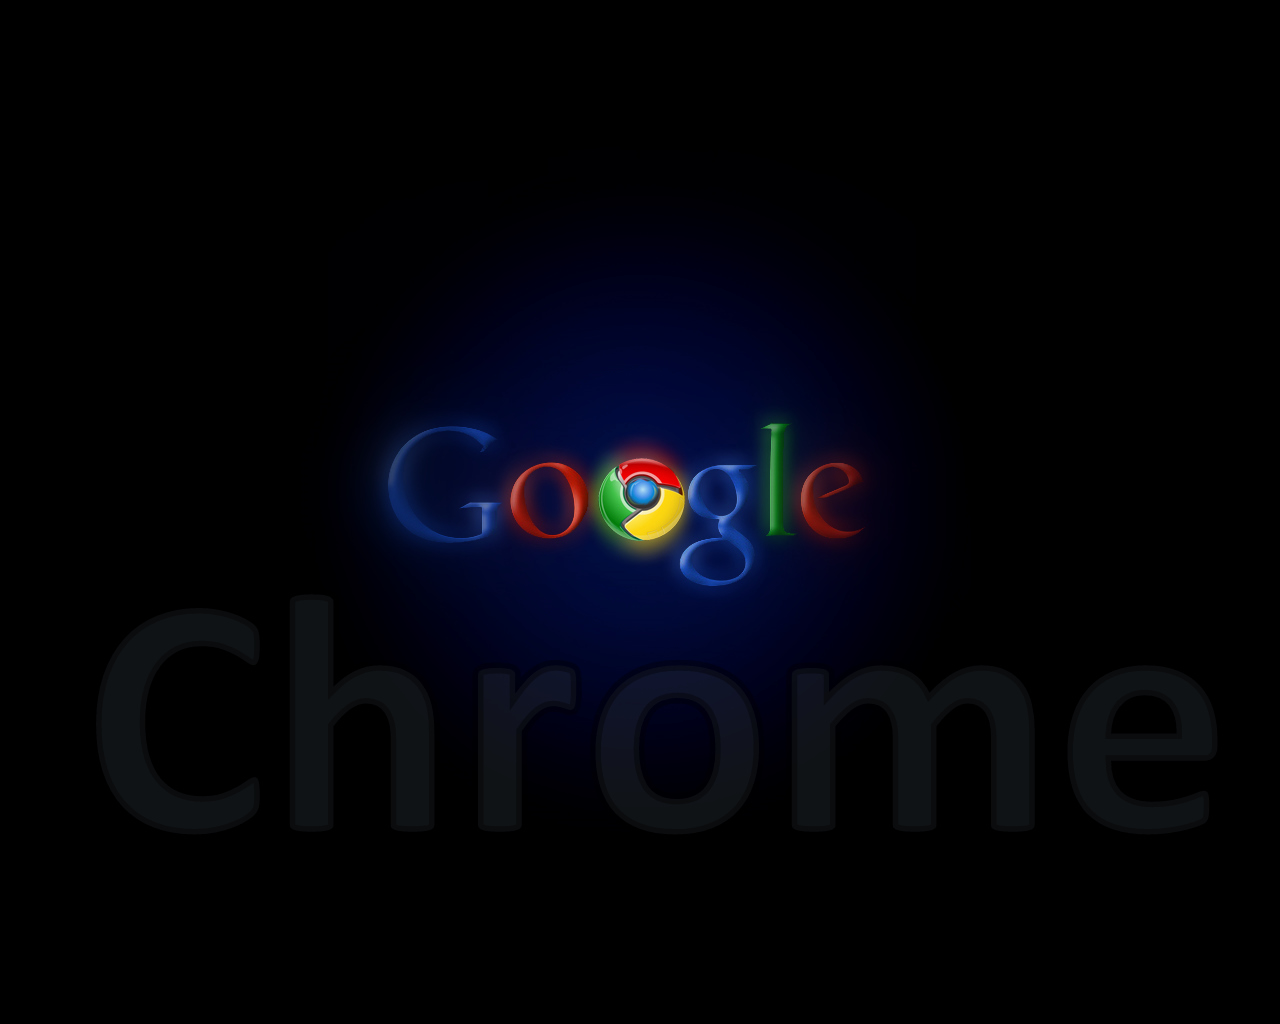 how to turn google chrome black